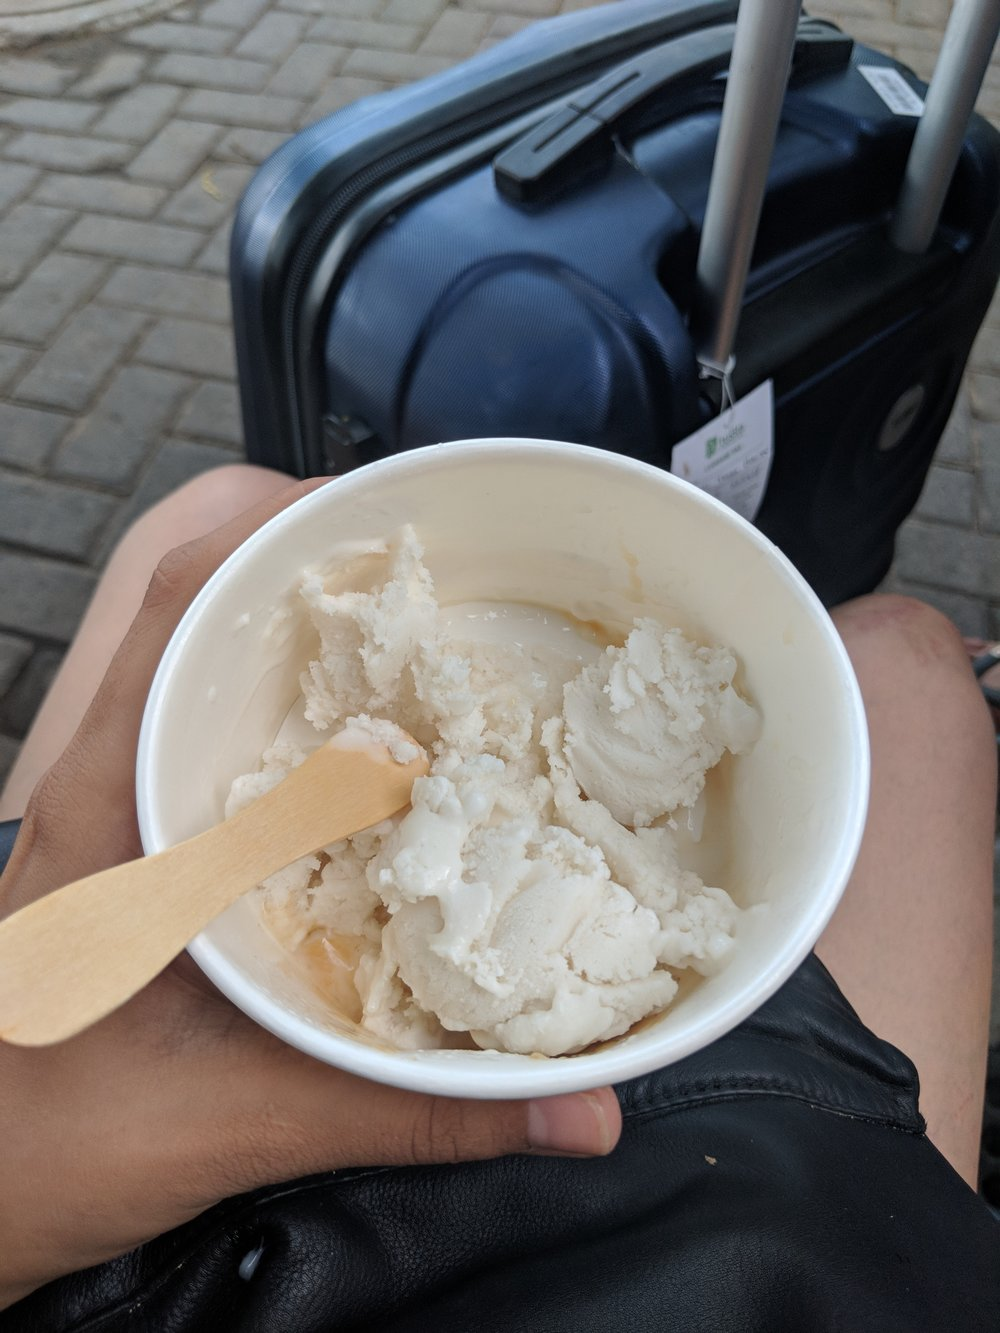 Tender Coconut Ice-cream - creamy and delicious Ice Cream from GoPut Sanur Beach